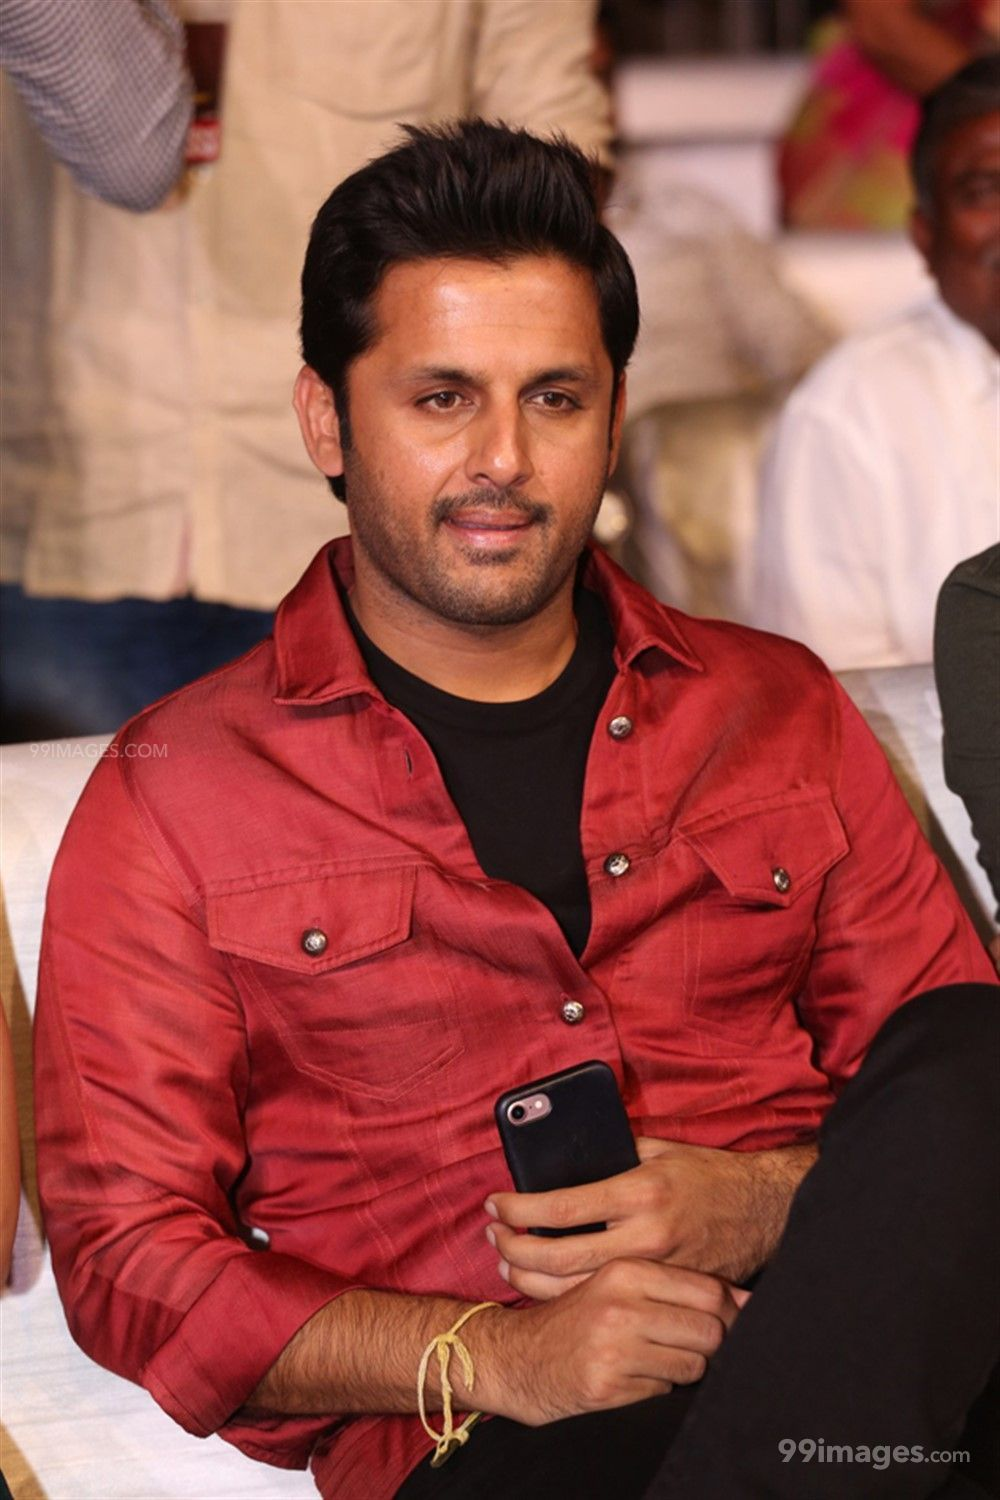 Bheeshma Movie Latest Hd Photos Posters Wallpapers Download 1080p 4k 358805 Bheeshma Nithiin Rashm In 2020 Twitter Profile Picture Twitter Image Cover Pics